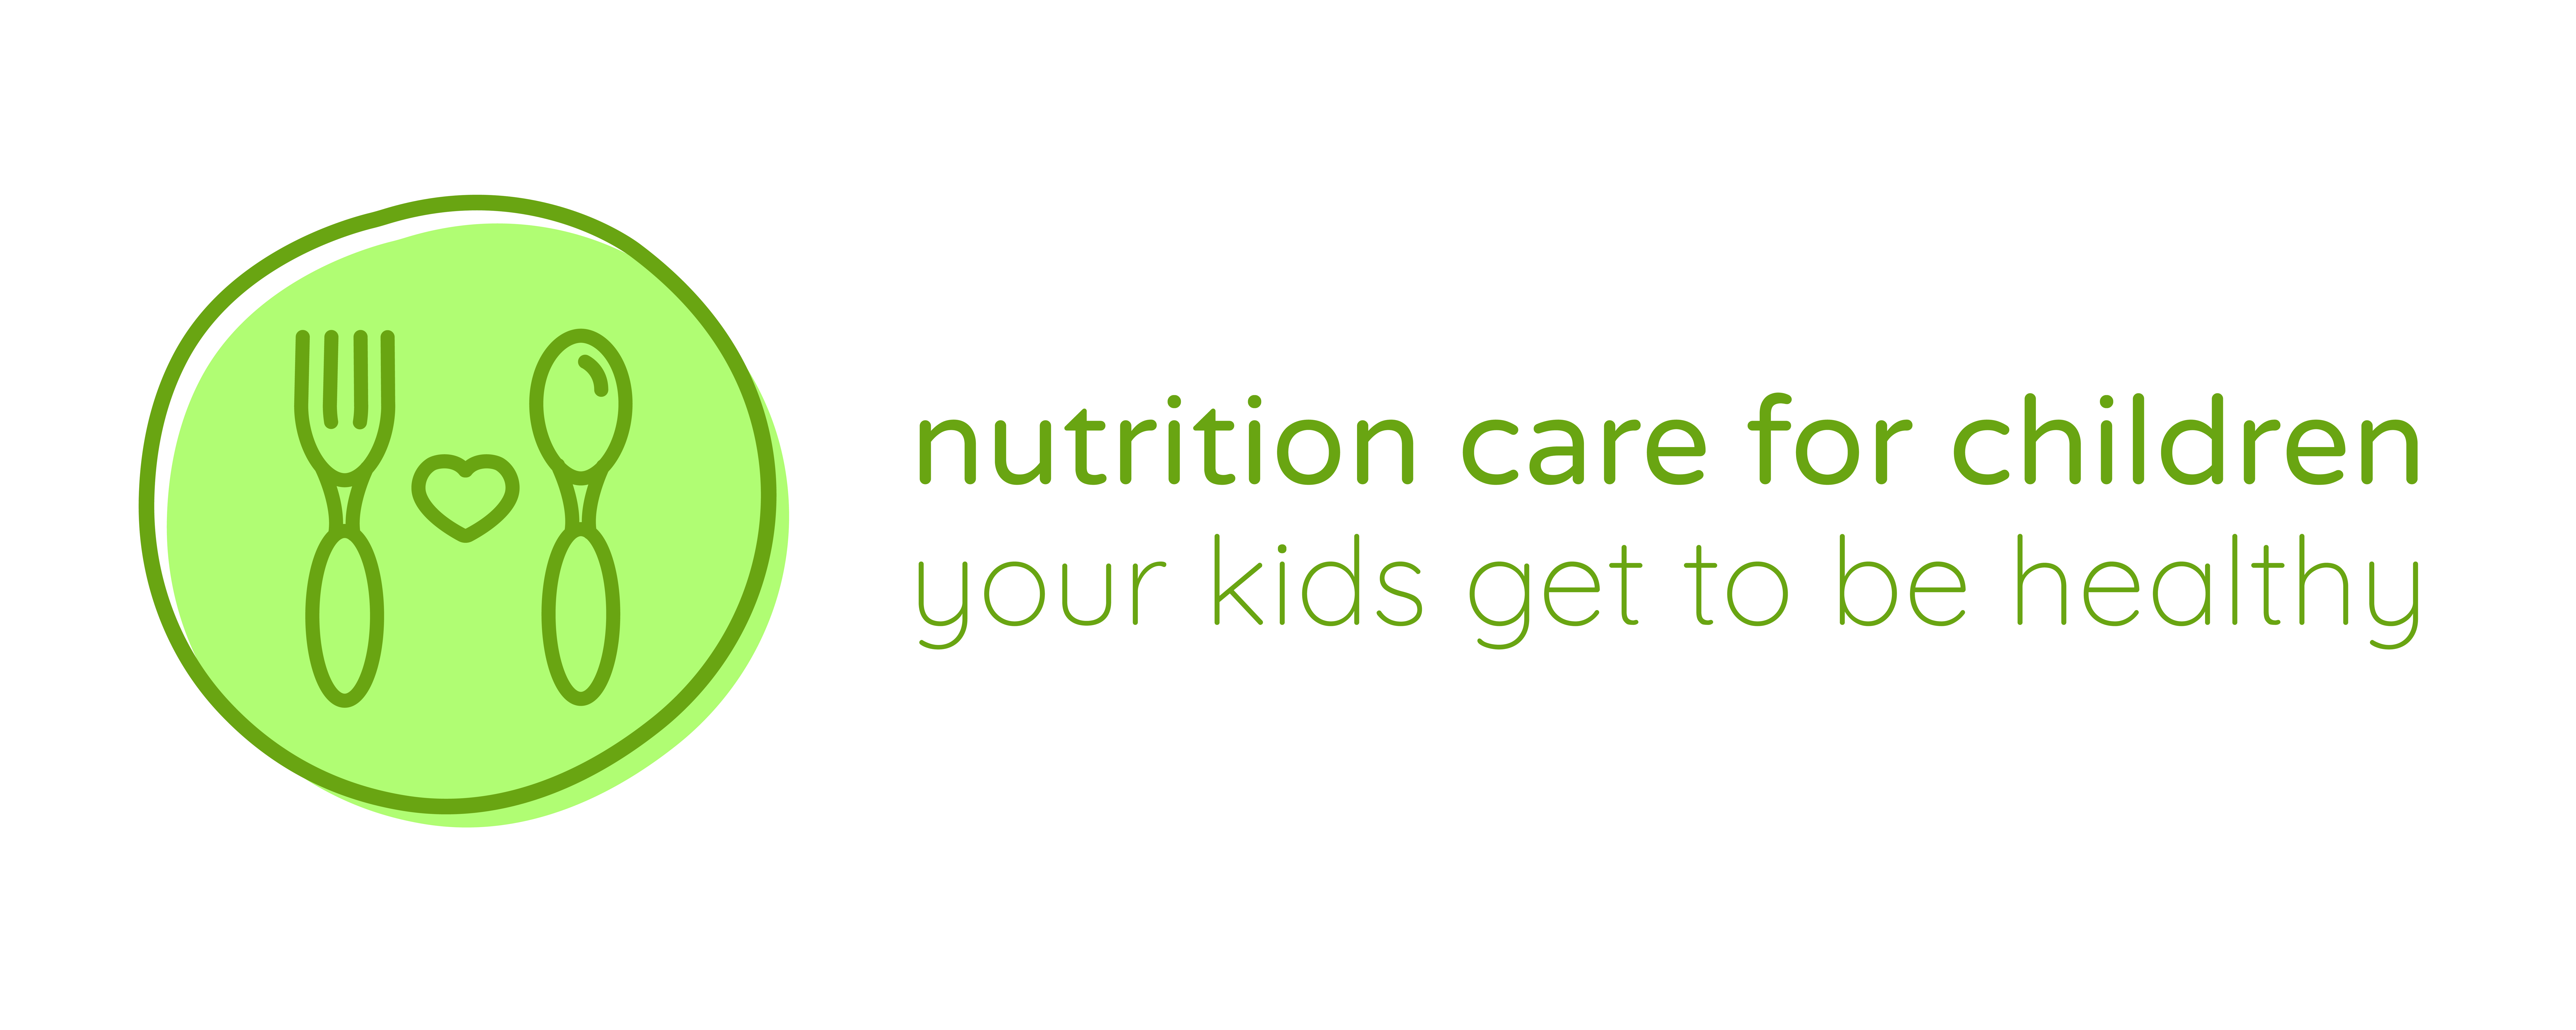 Nutrition Care For Children Learning